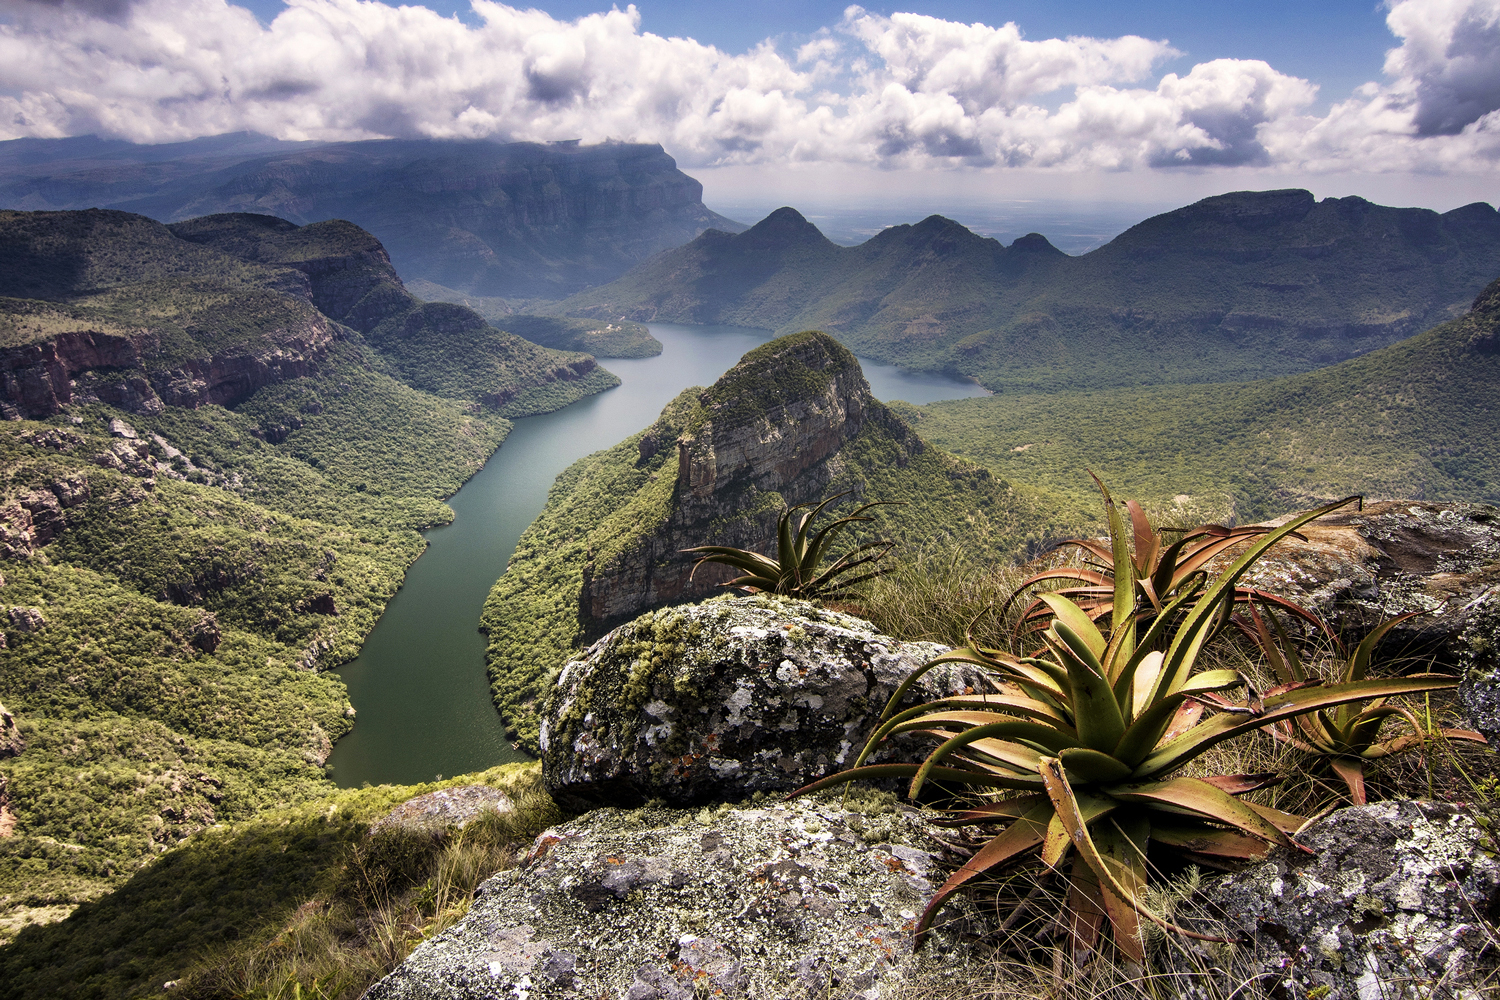 Aloes at the top of Blyde River Canyon in Mpumalanga, South Africa ©Des Jacobs